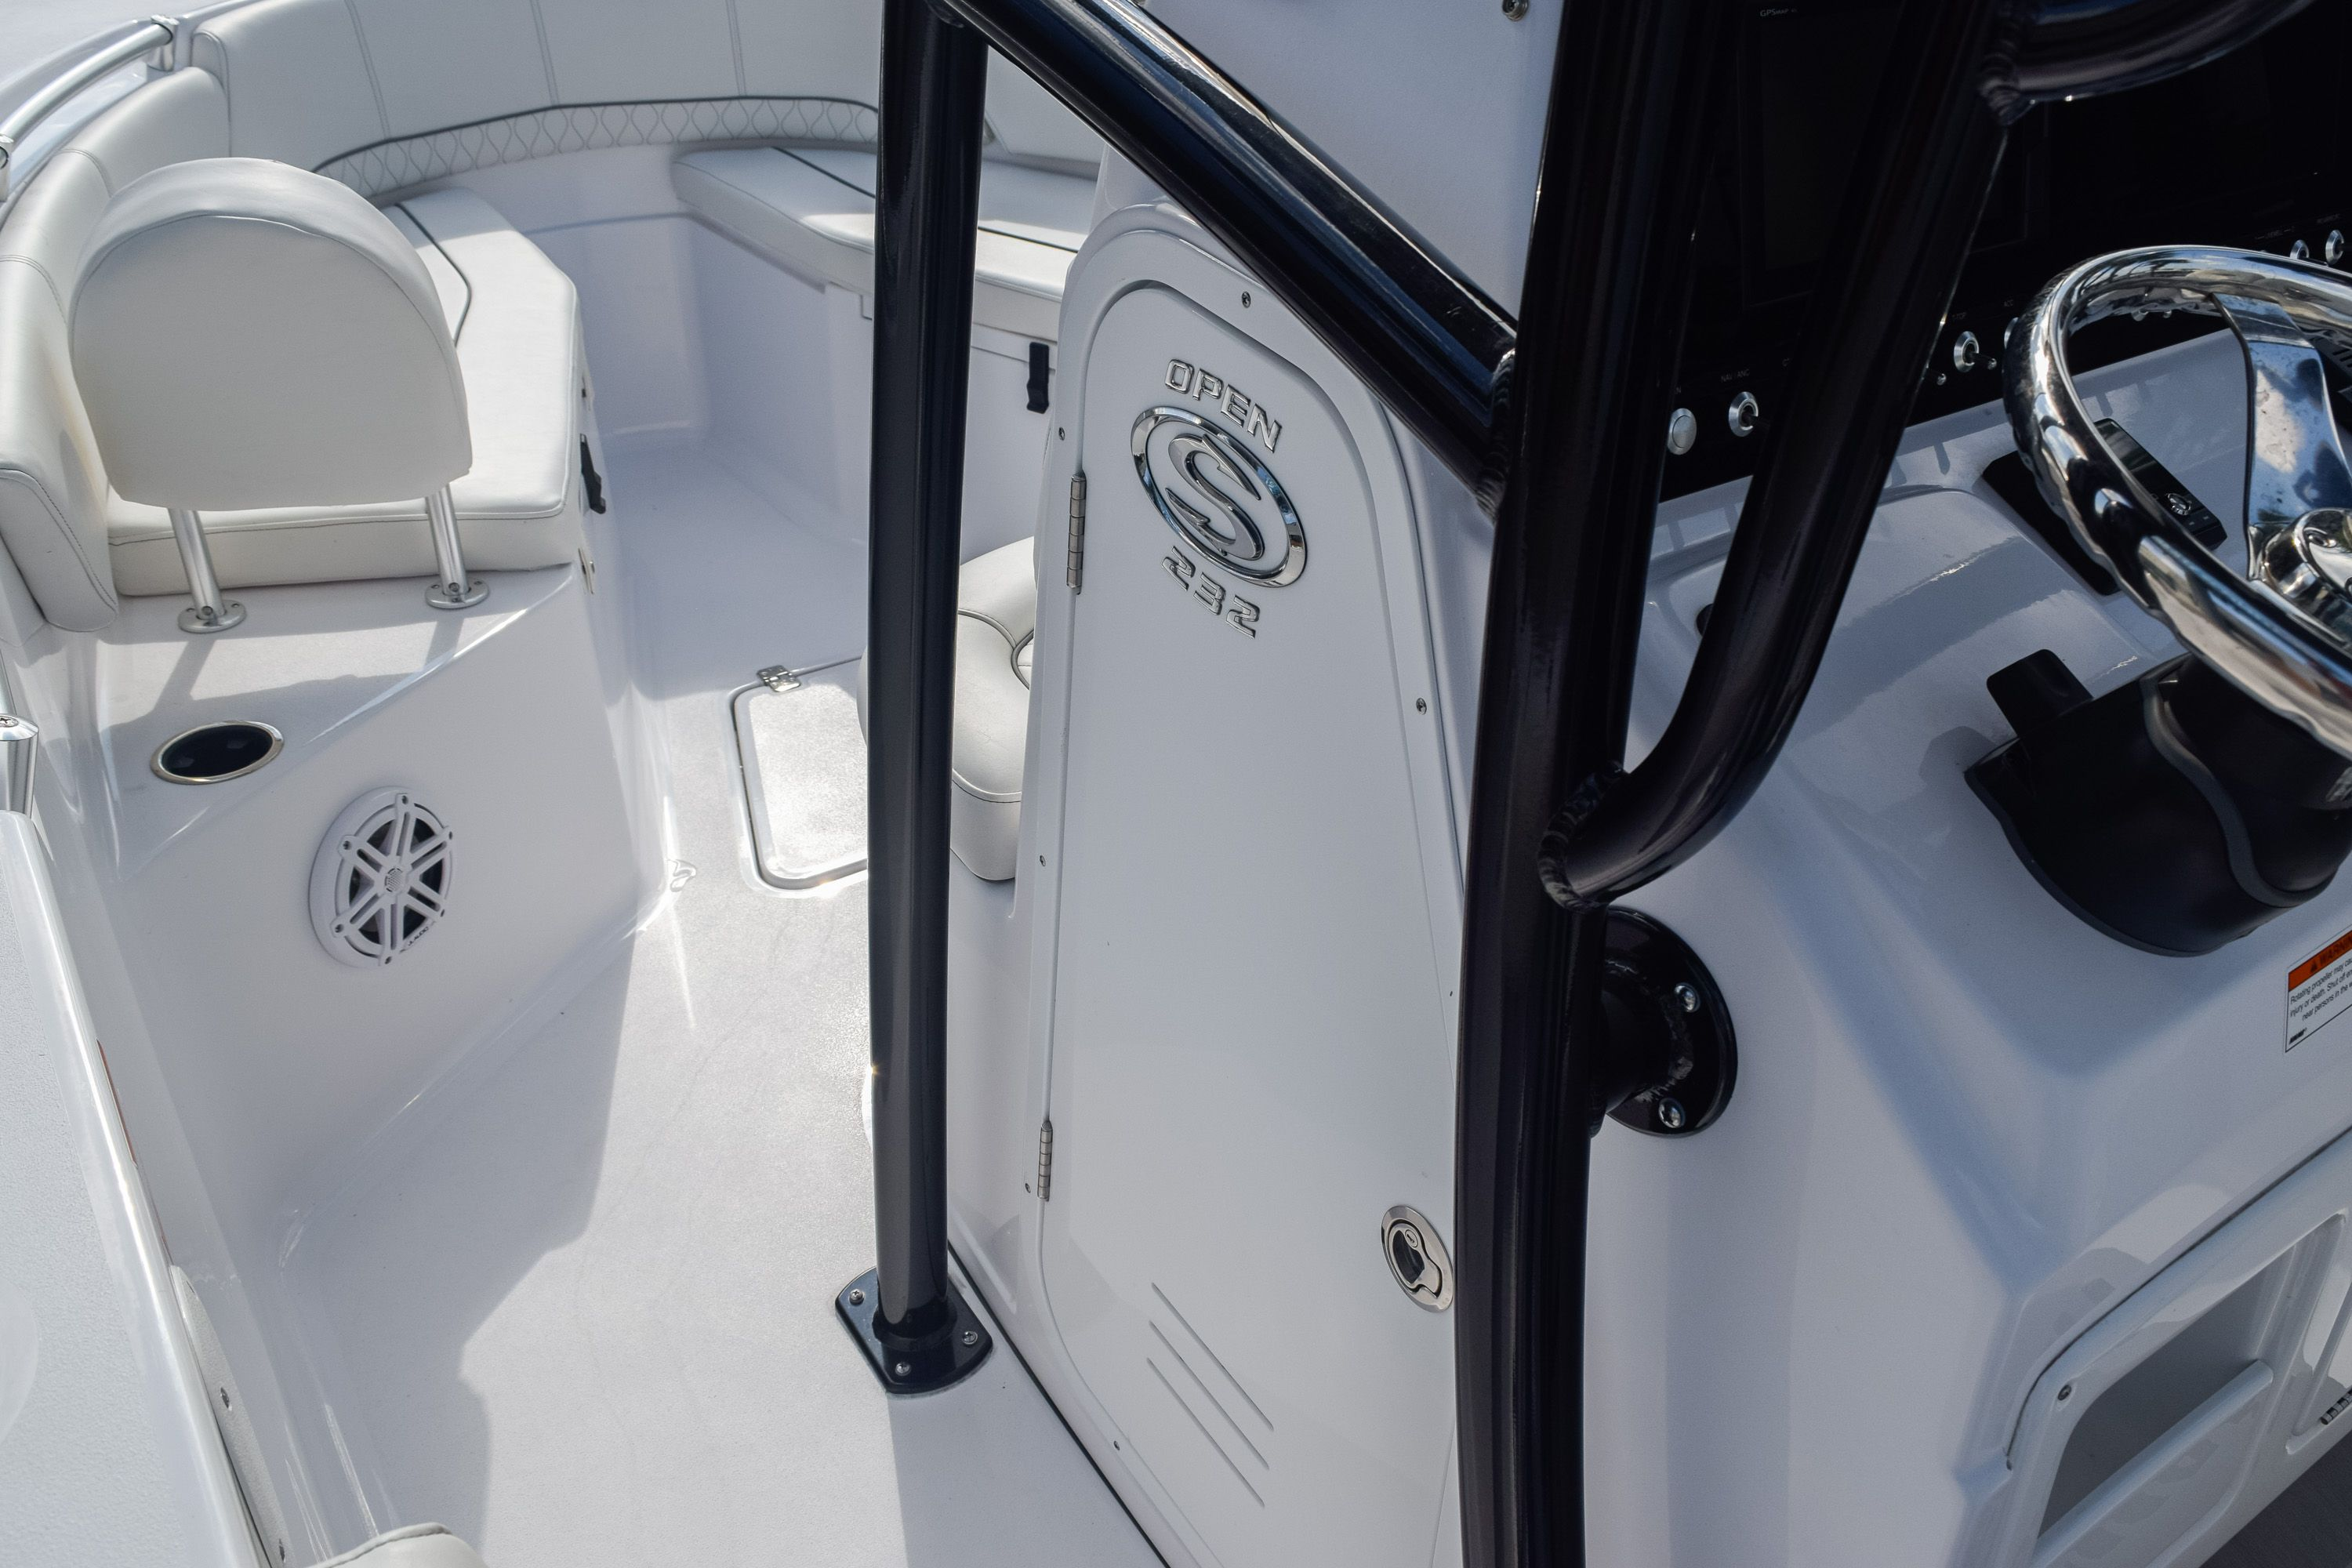 Thumbnail 24 for New 2020 Sportsman Open 232 Center Console boat for sale in Fort Lauderdale, FL